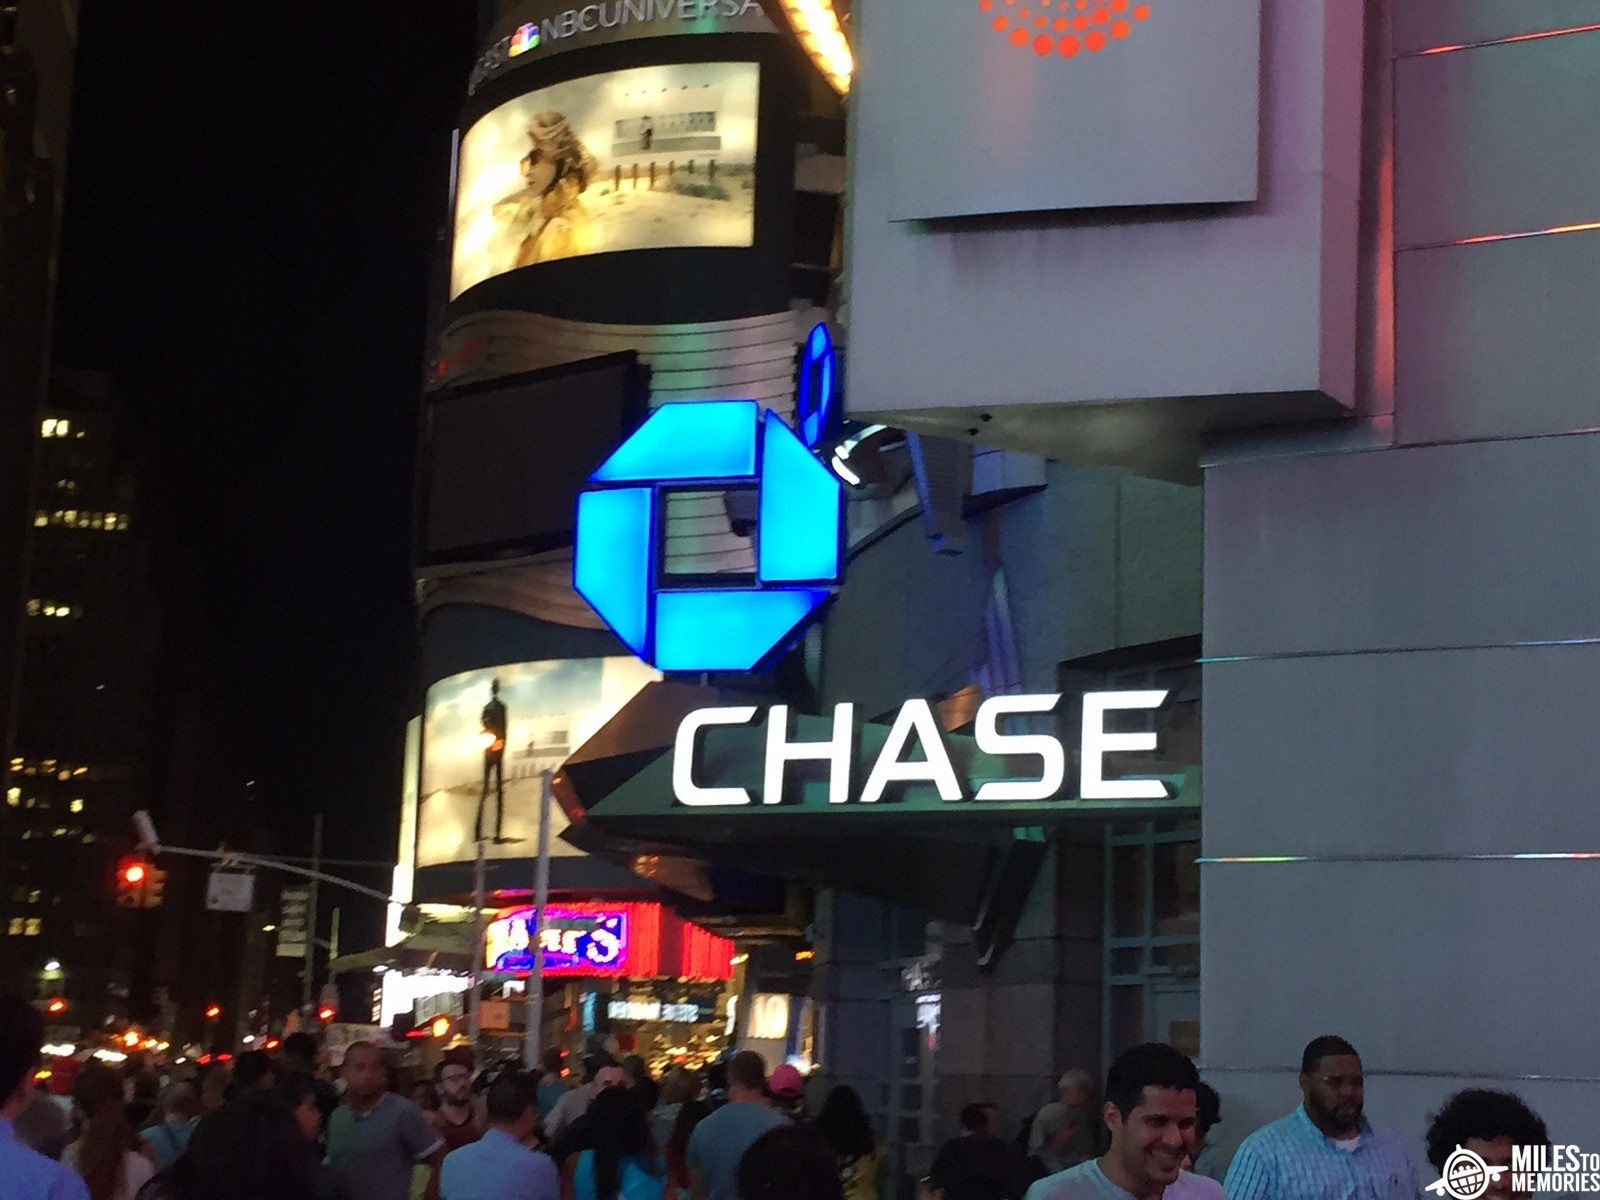 Chase Pop-up